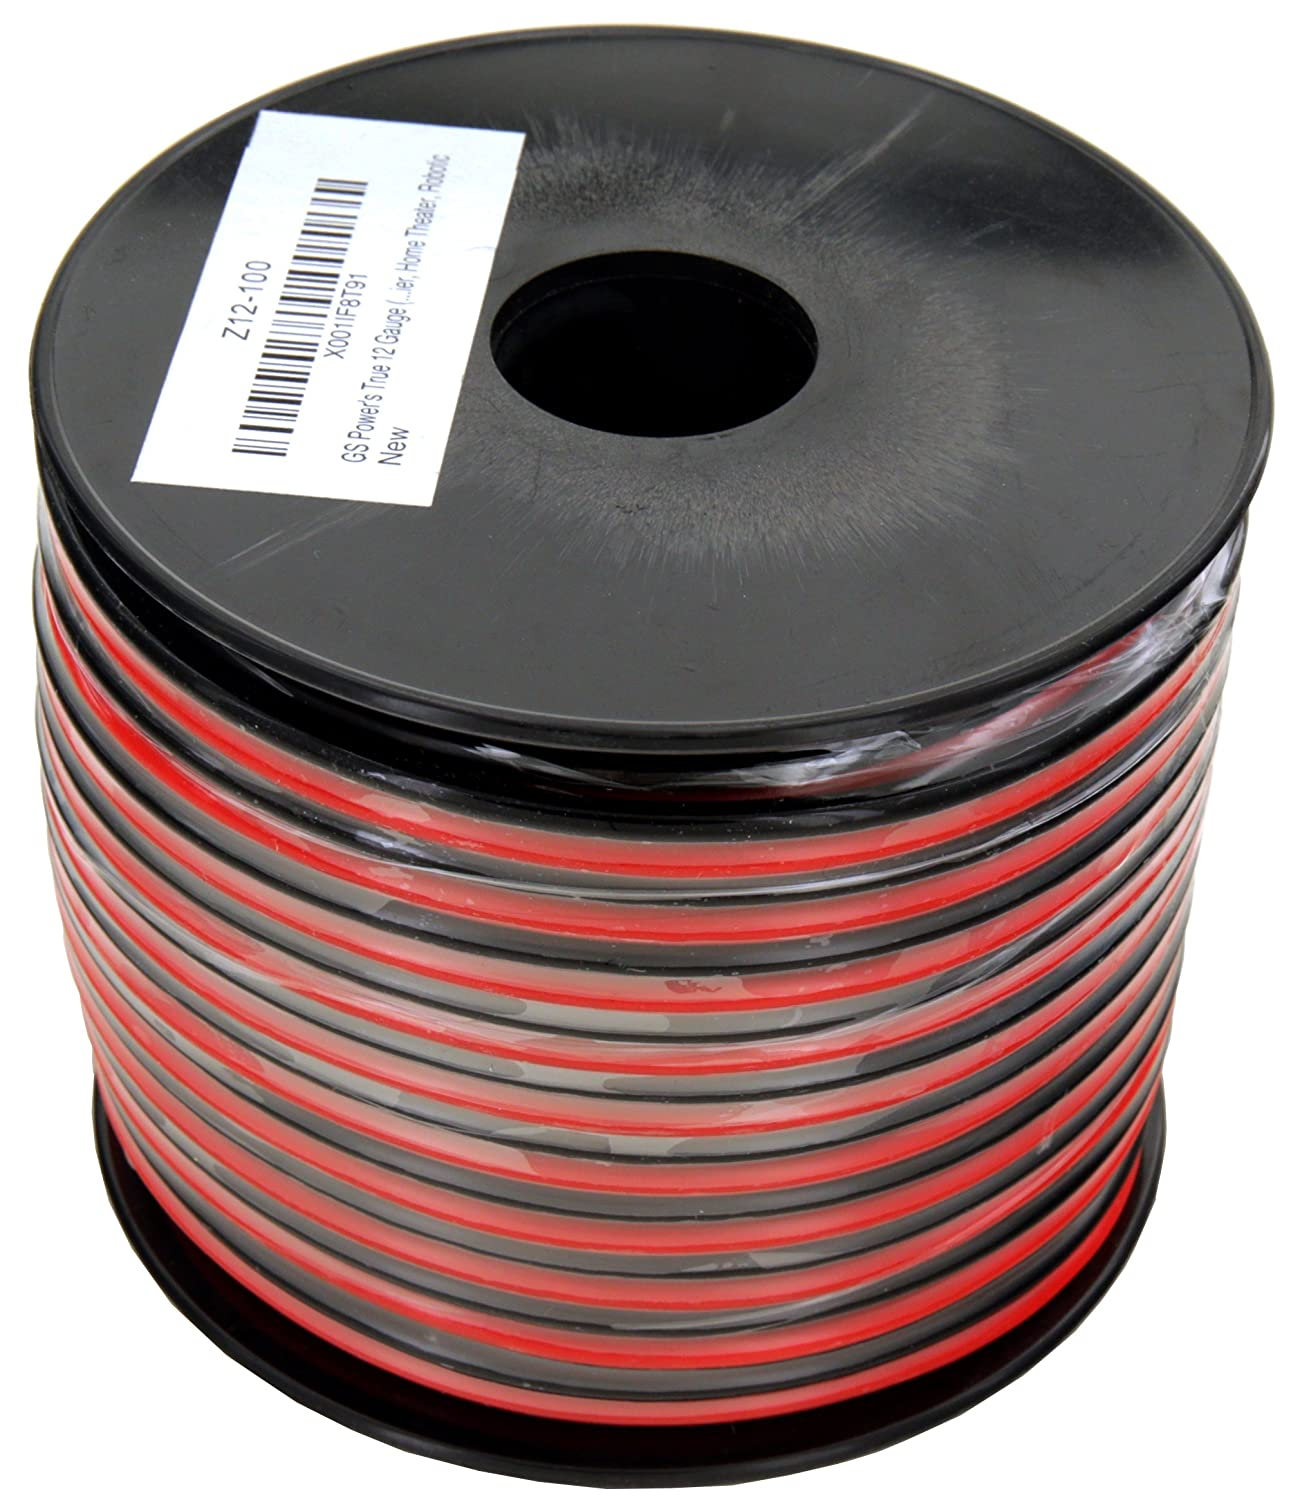 Gs Powers True 12 Gauge American Wire Ga 100 Feet Home Wiring 999 Ofc Stranded Oxygen Free Copper Red Black 2 Conductor Bonded Zip Cord Power Speaker